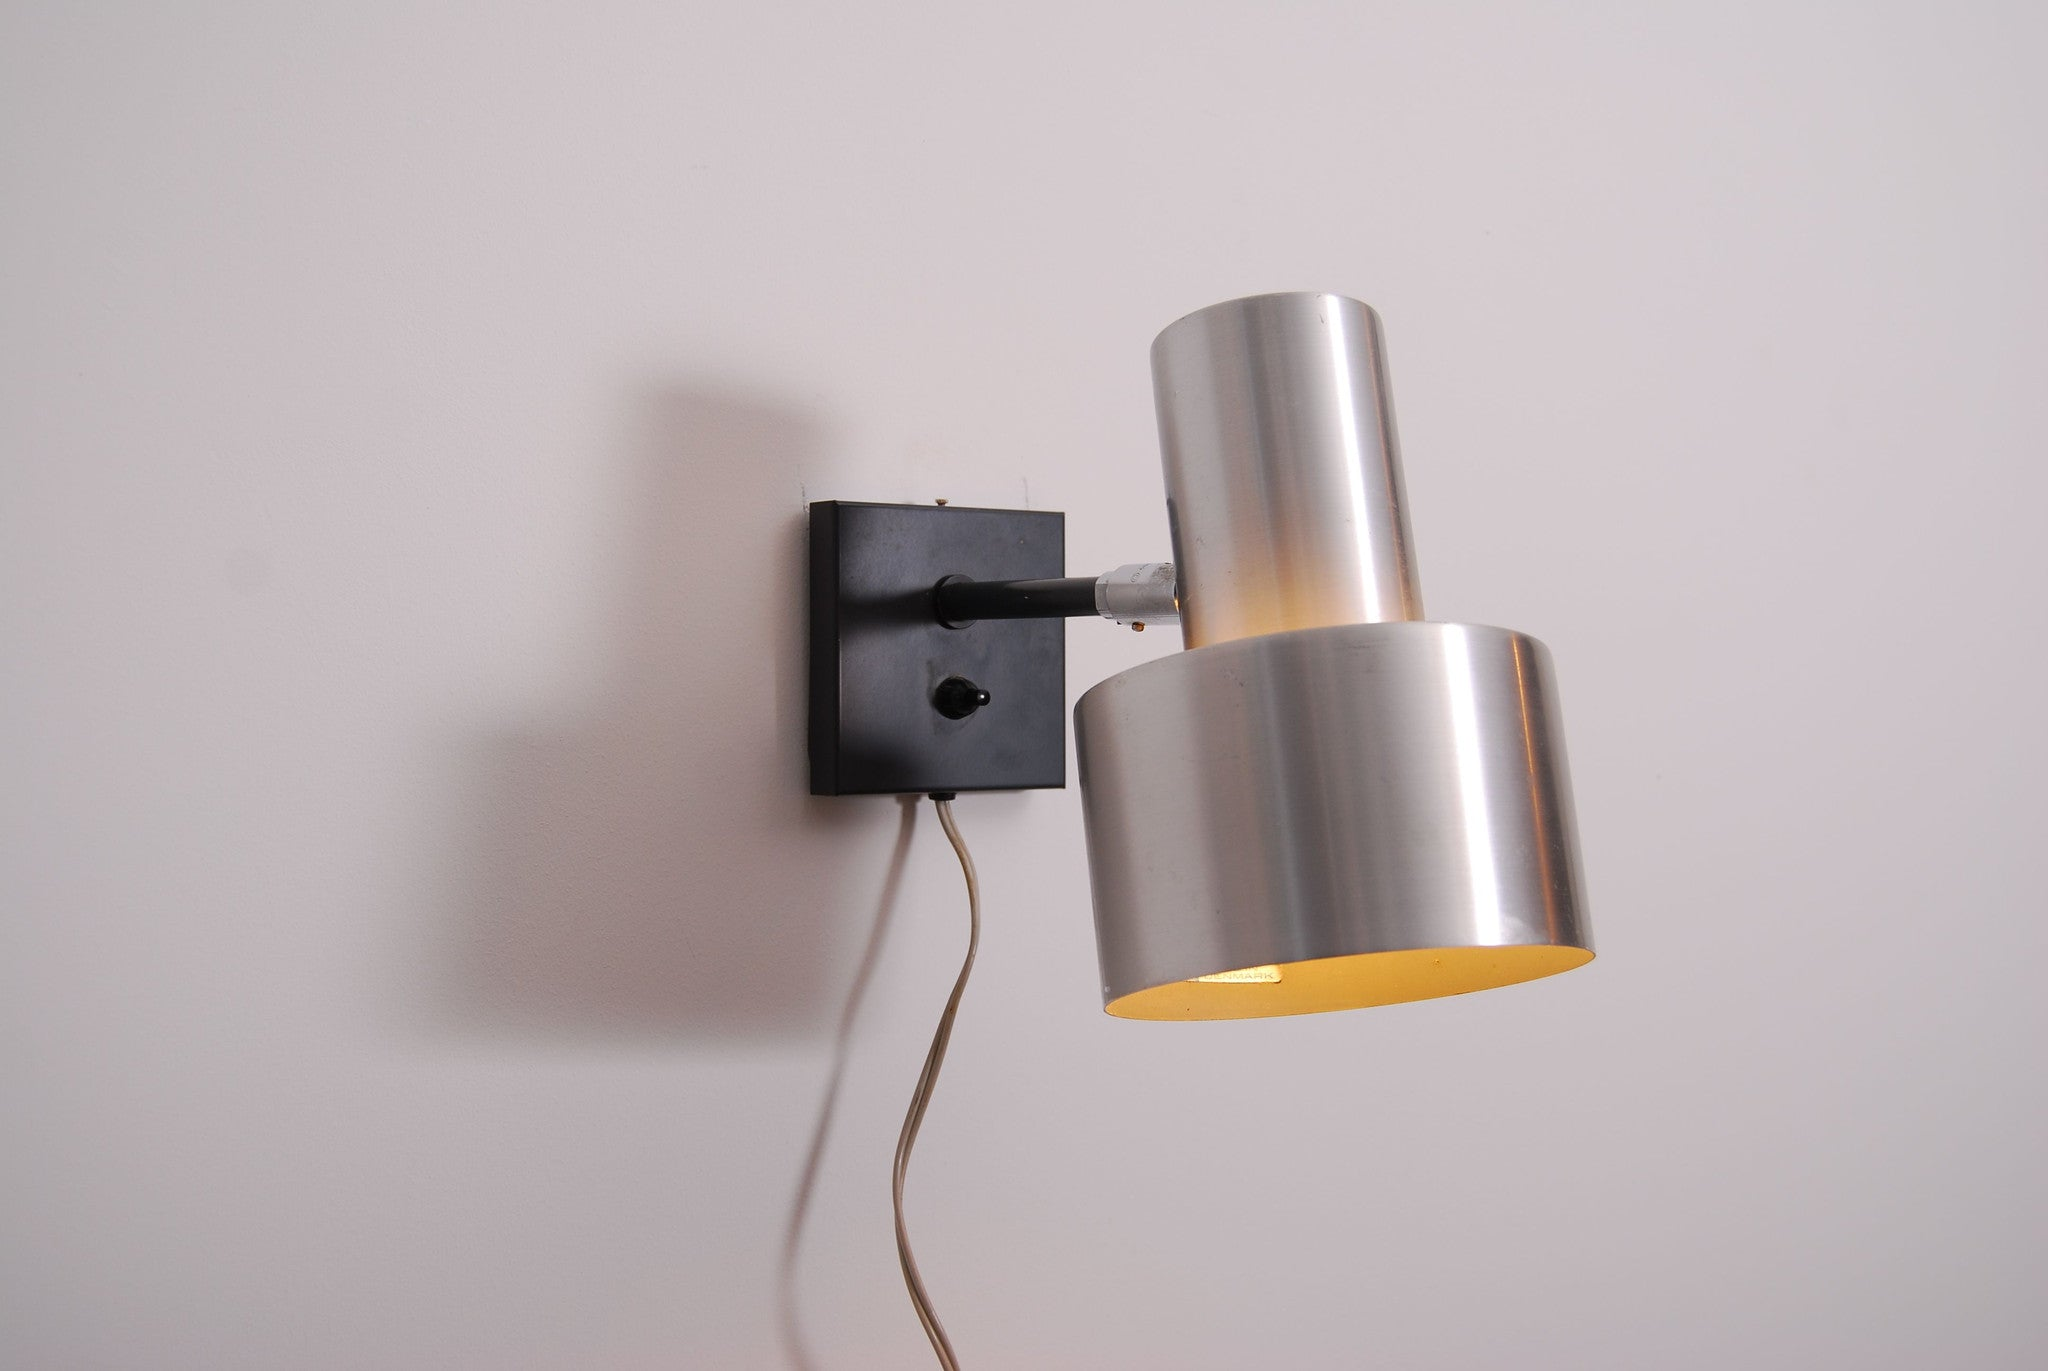 Studio wall lamp by Jo Hammerborg